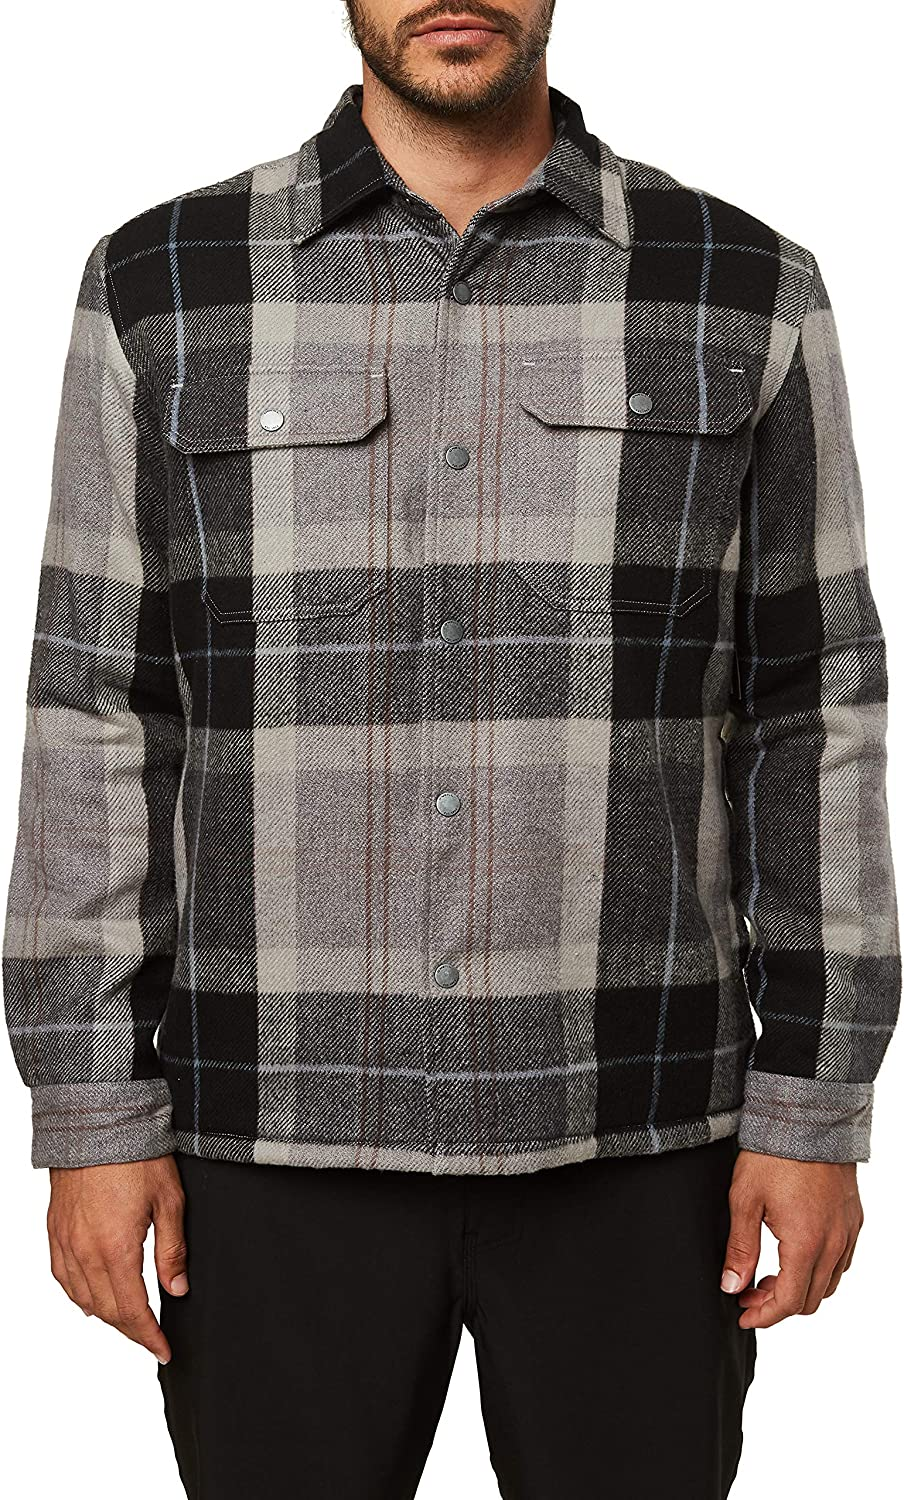 O'Neill Men's Heavy Weight Flannel Shirt Jacket: Clothing